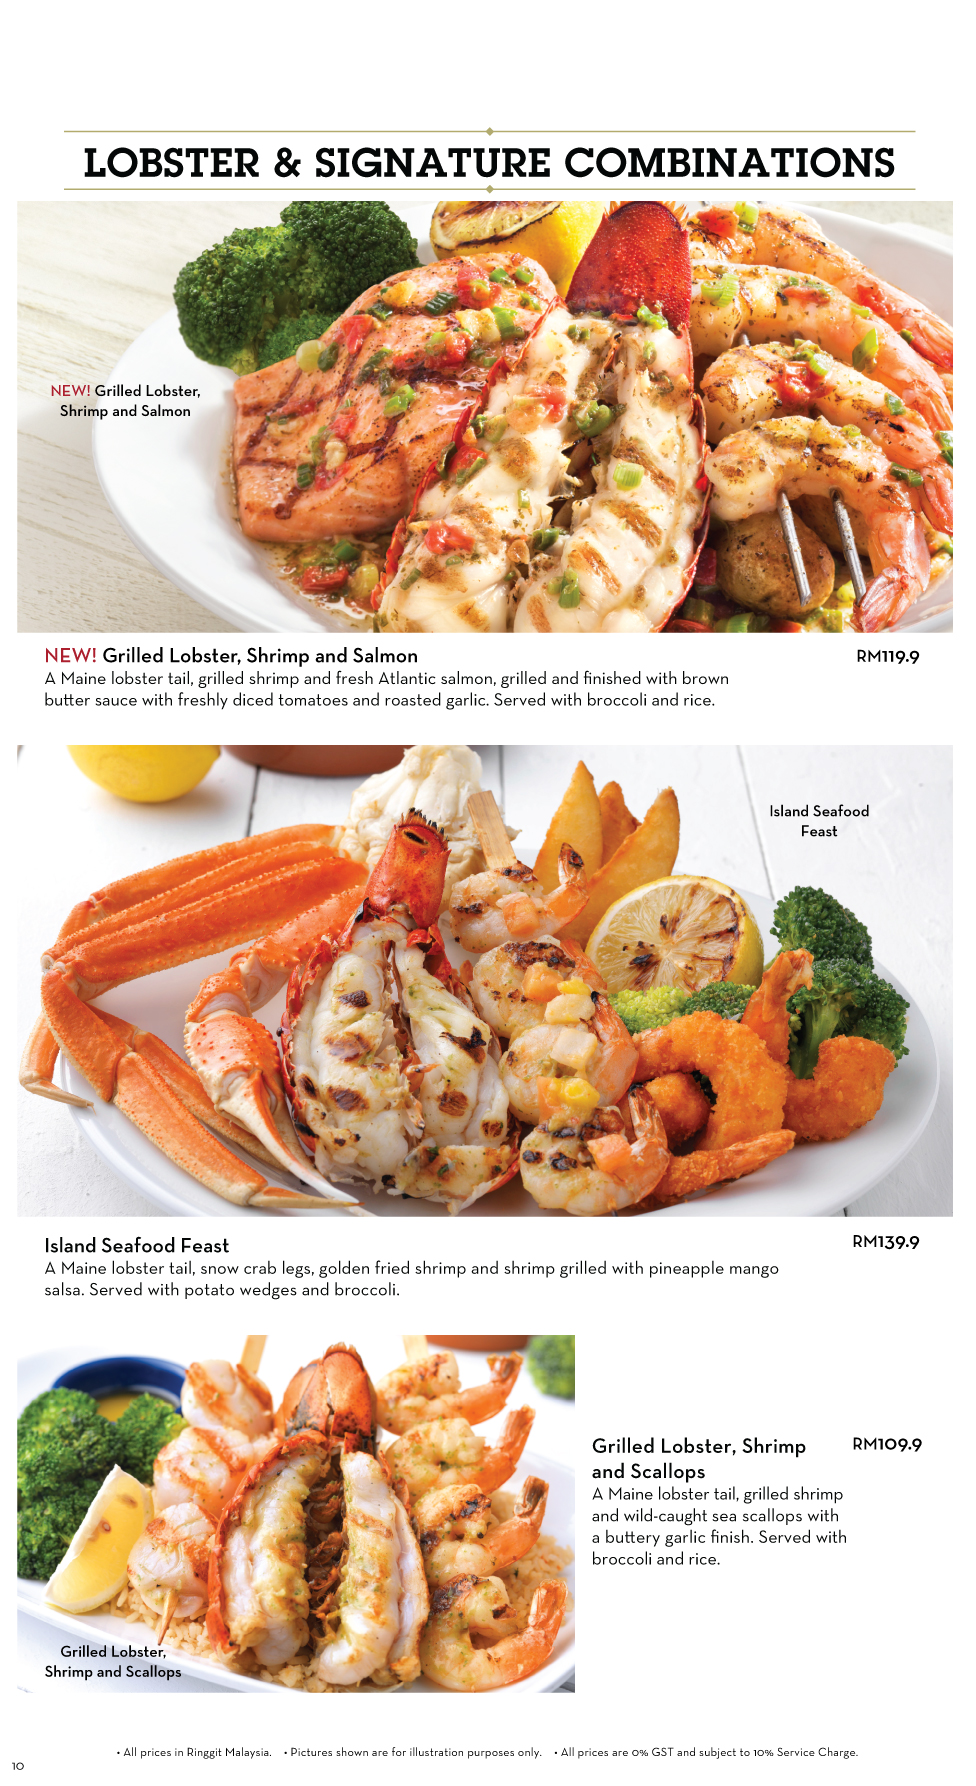 Pg10_Lobster-and-Signature-Combinations.jpg